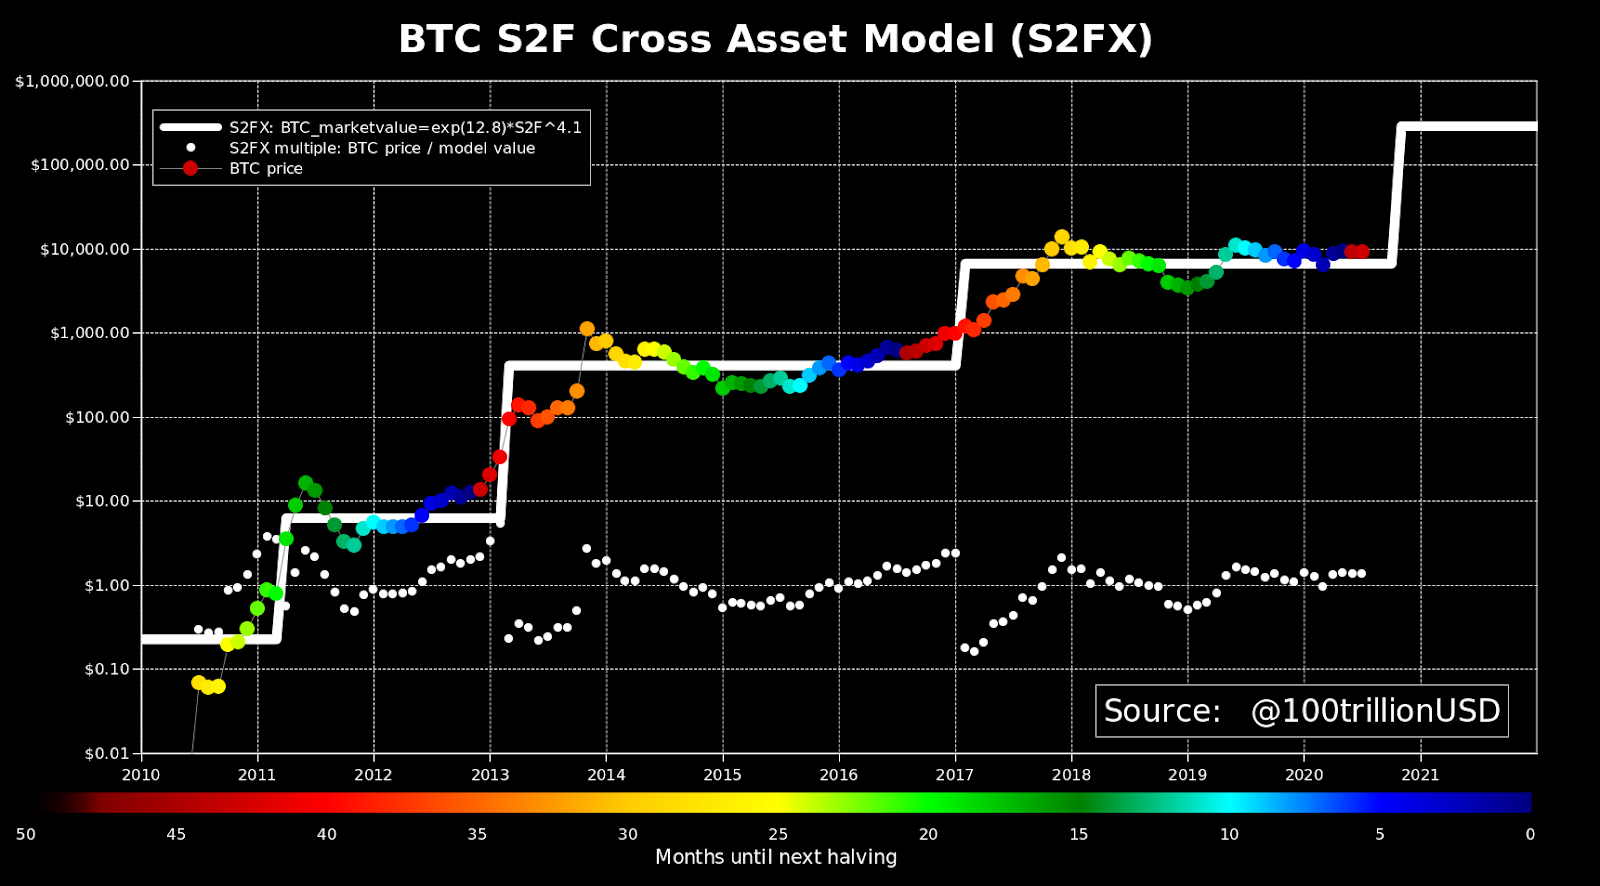 Bitcoin S2FX price model as of July 1